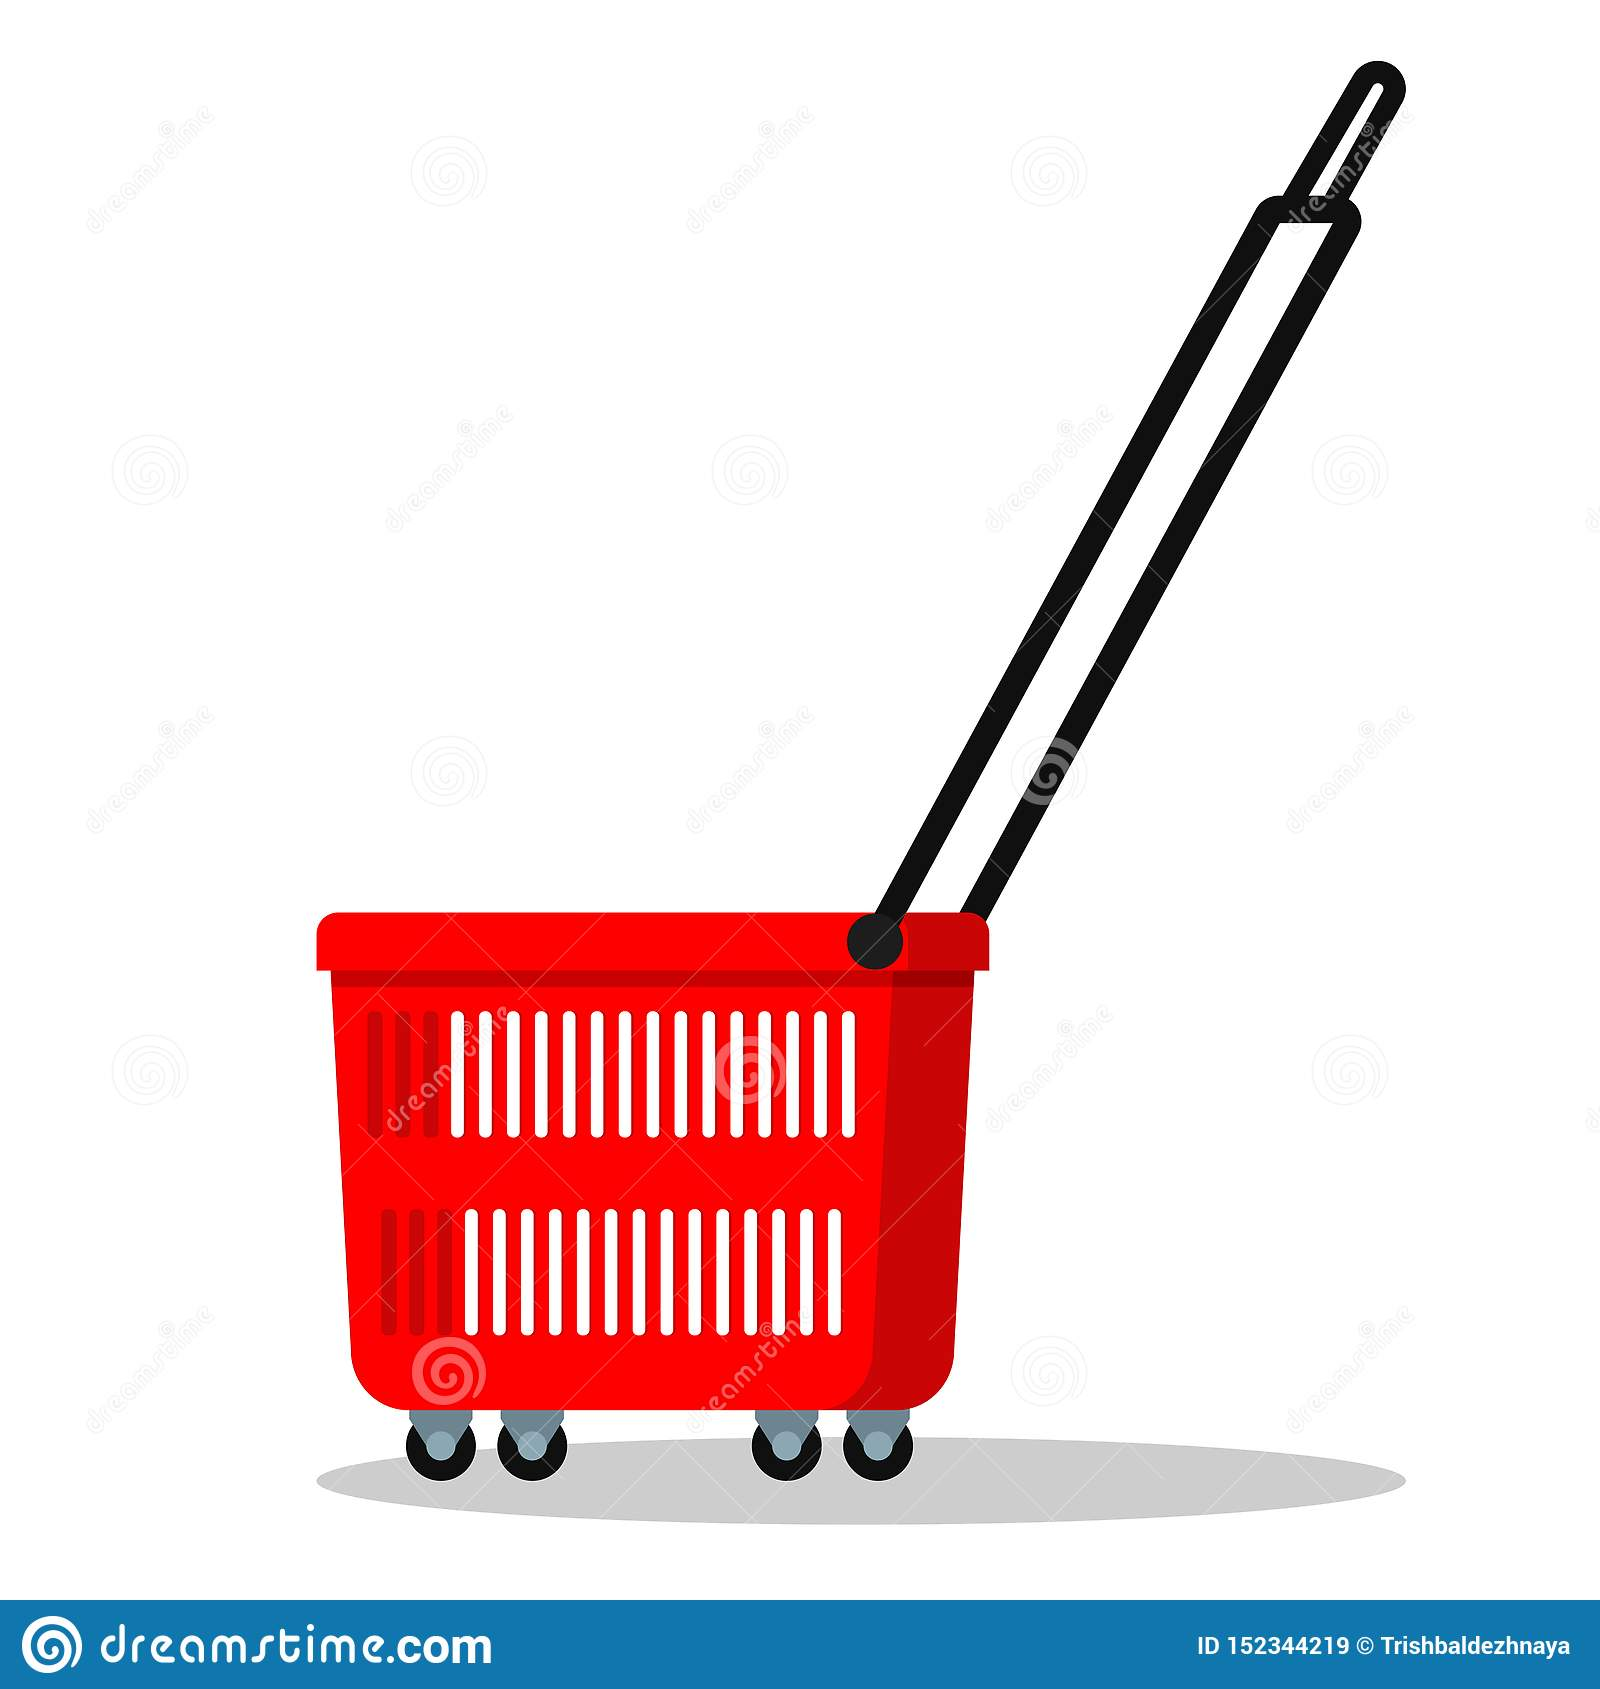 Color simple template icon of red plastic shopping basket with wheels and long handle